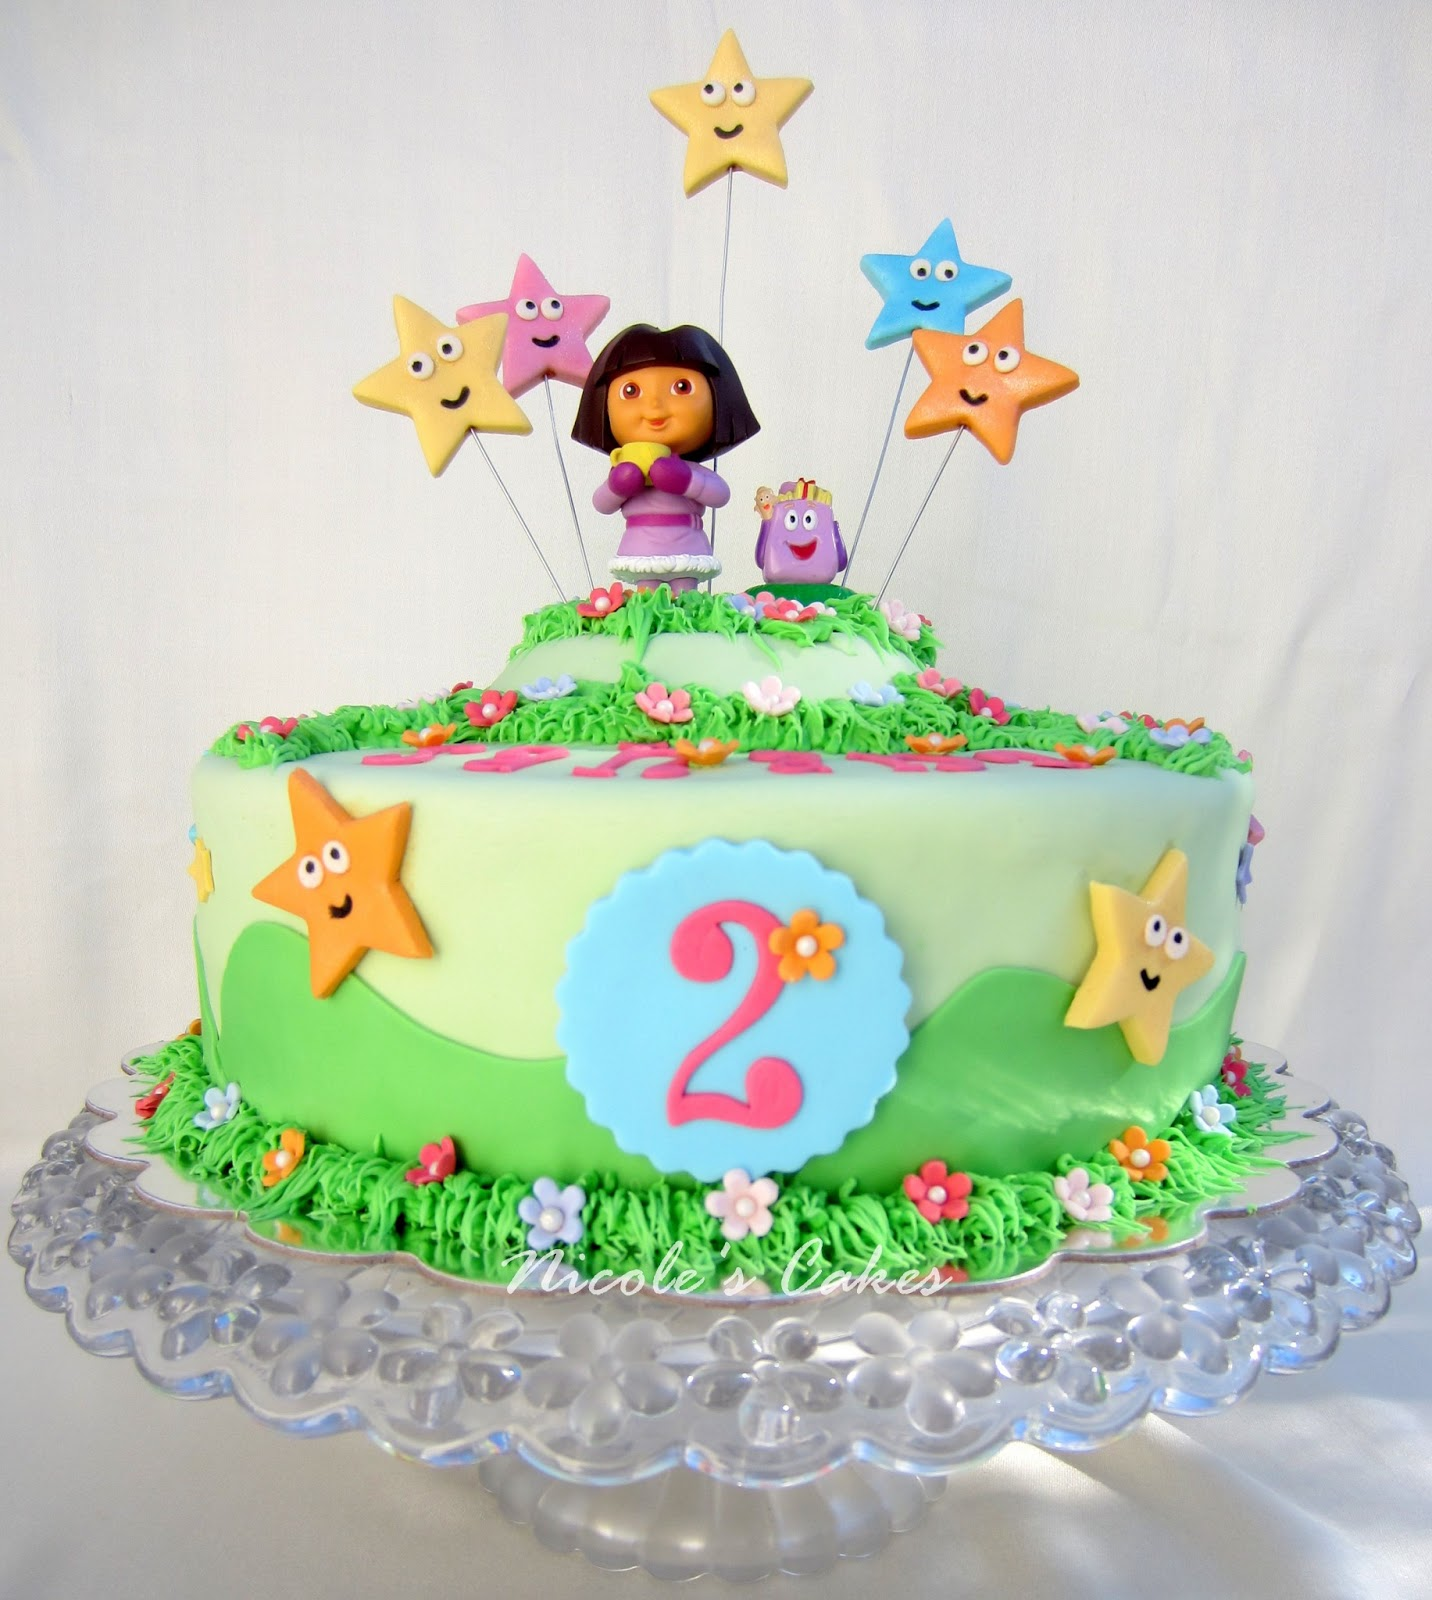 On Birthday Cakes Dora The Explorer Birthday Cake